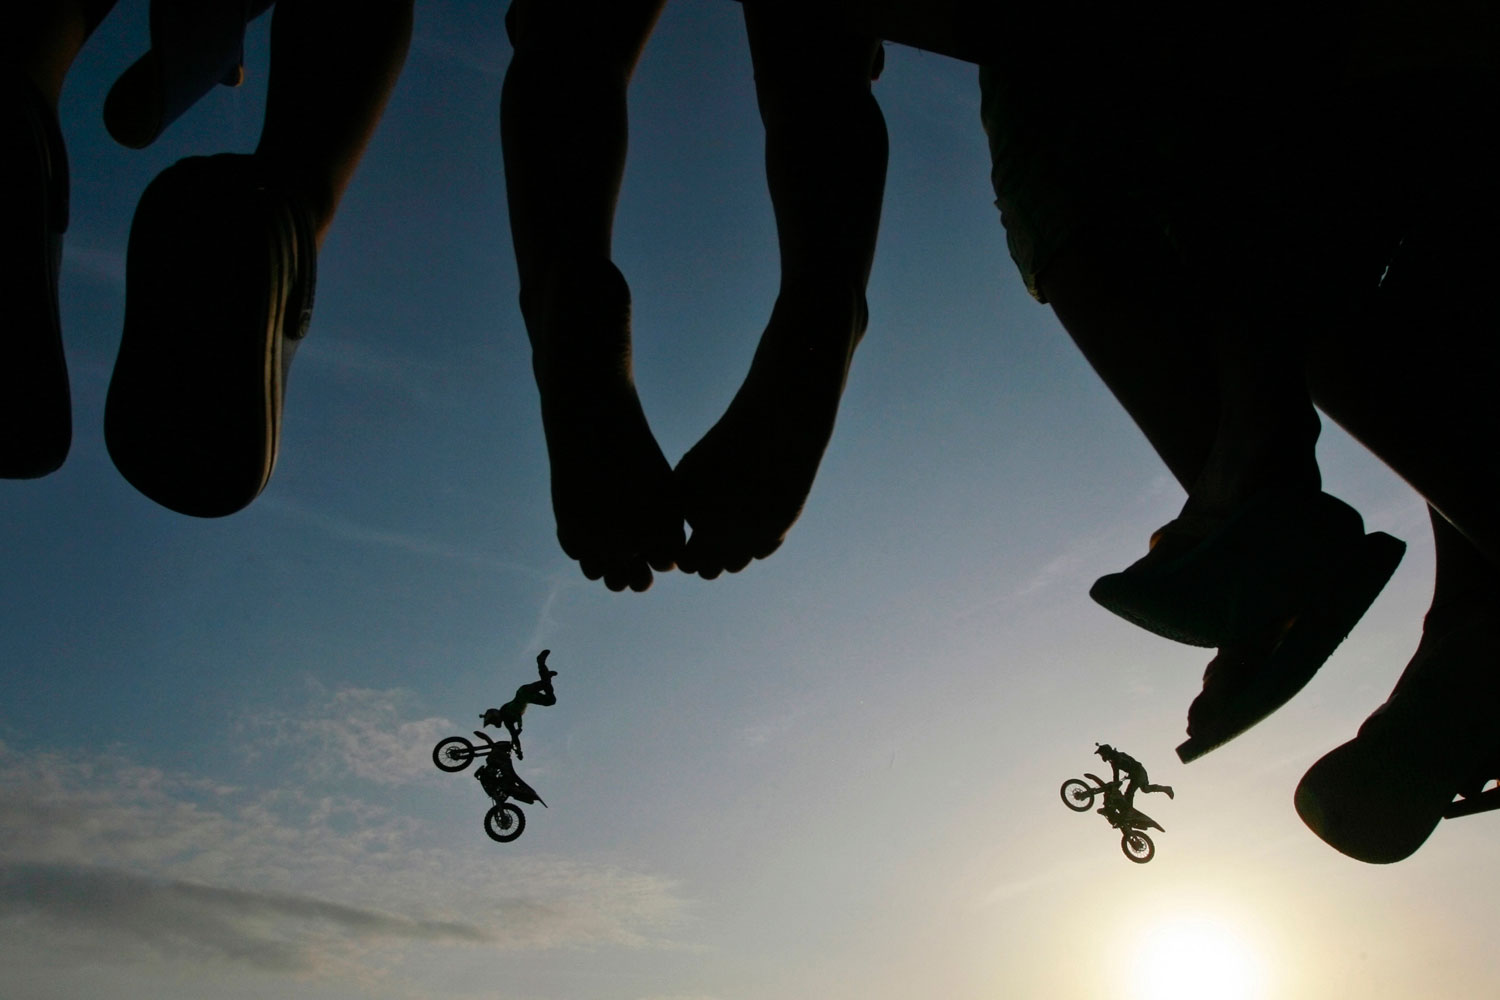 July 30, 2011. Spectators watch as freestyle motocross stunt riders from Red Bull X-Fighters perform during their show at Galle Face Green in Colombo.